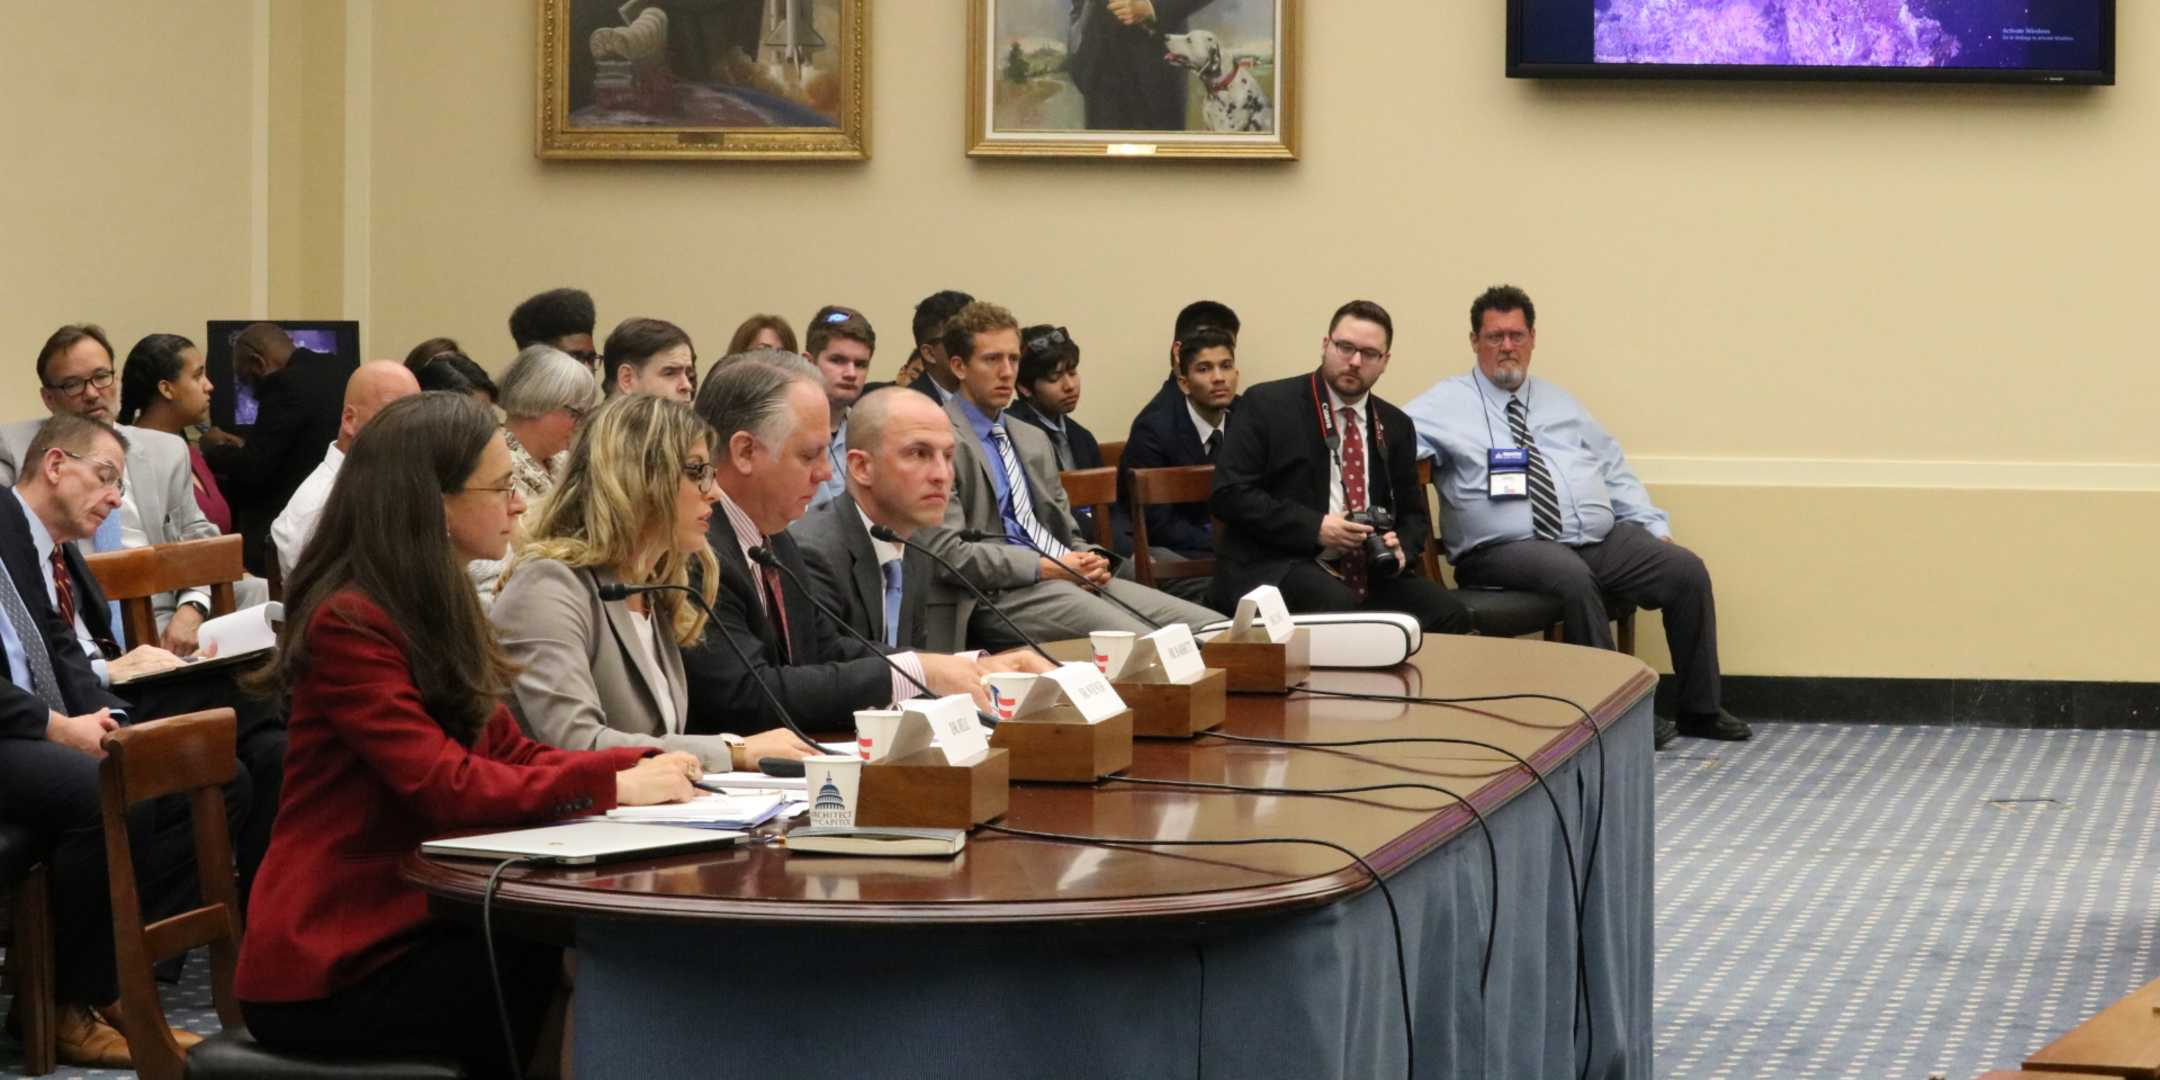 Dr Carlie Wiener (second from left) speaking at the House Committee Hearing. Image courtesy Catherine Anderson